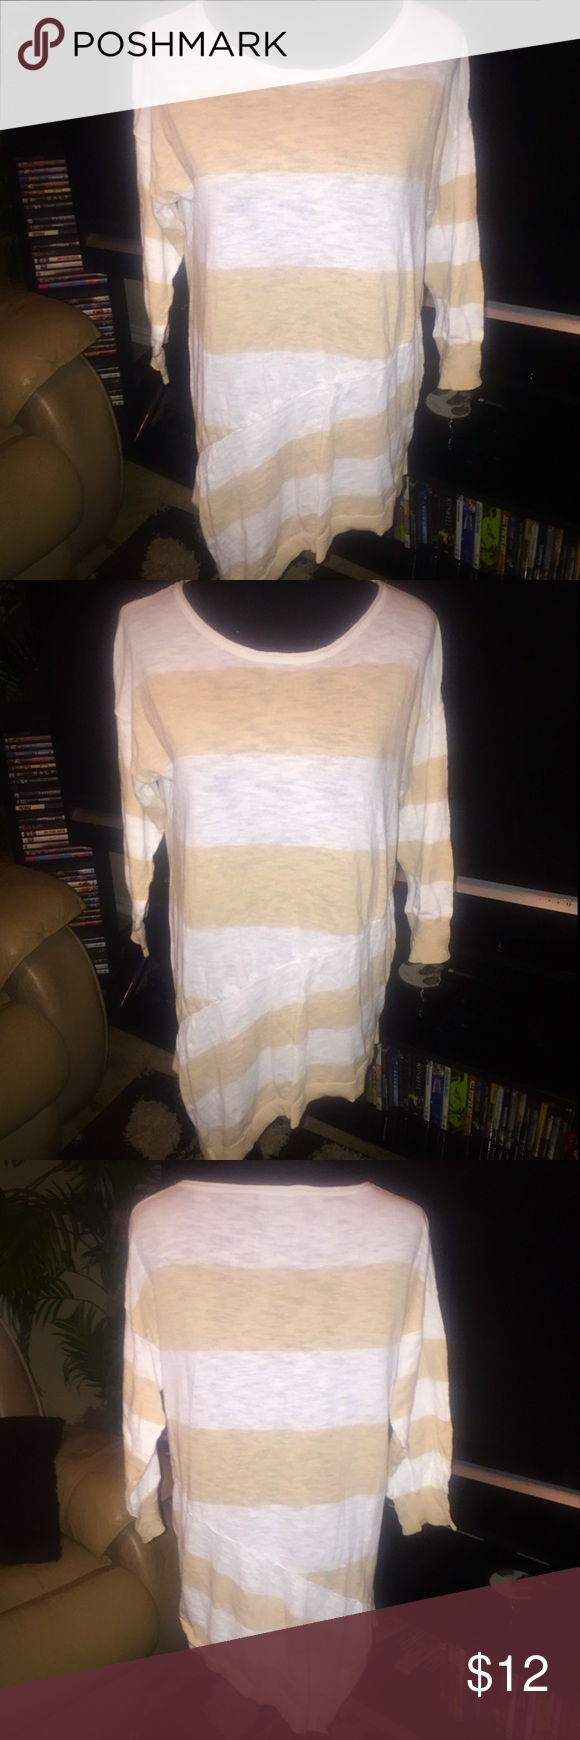 Verve Sweater Good condition | Used | Verve Sweater | White and Tan Wide Lines | Ling Sleeve | Scoop neckline | Asymmetrical Bottom Design | XL | 96% Cotton & 4% Nylon | Add'l 📸 upon request | 🚫 No Trade | 🚦Bundles and Offers Welcomed 🚦 Verve Sweaters